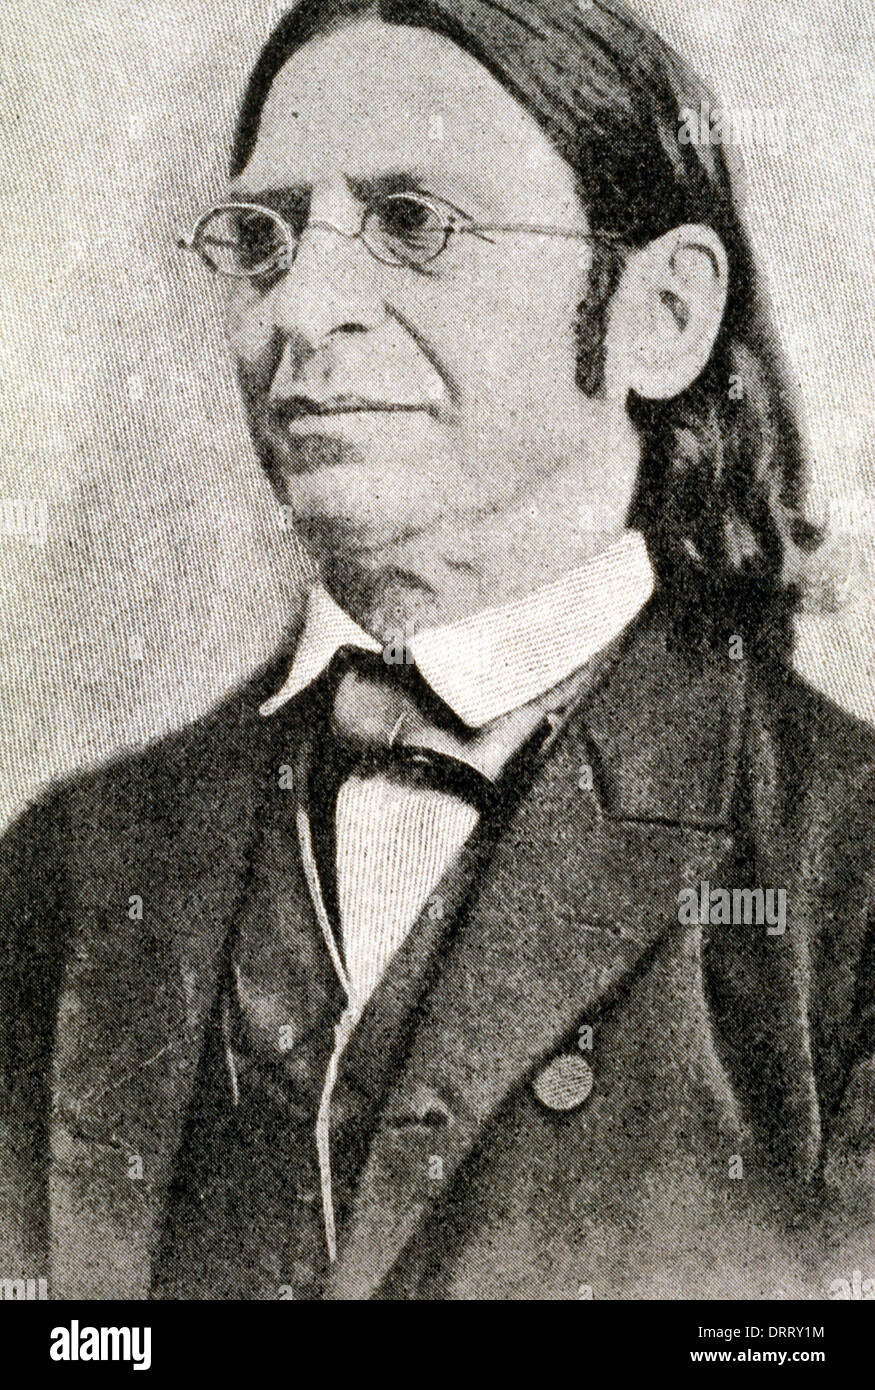 Abraham Geiger 1810-1874 Was German Rabbi Who Led Founding Of Reform Judaism - Stock Image